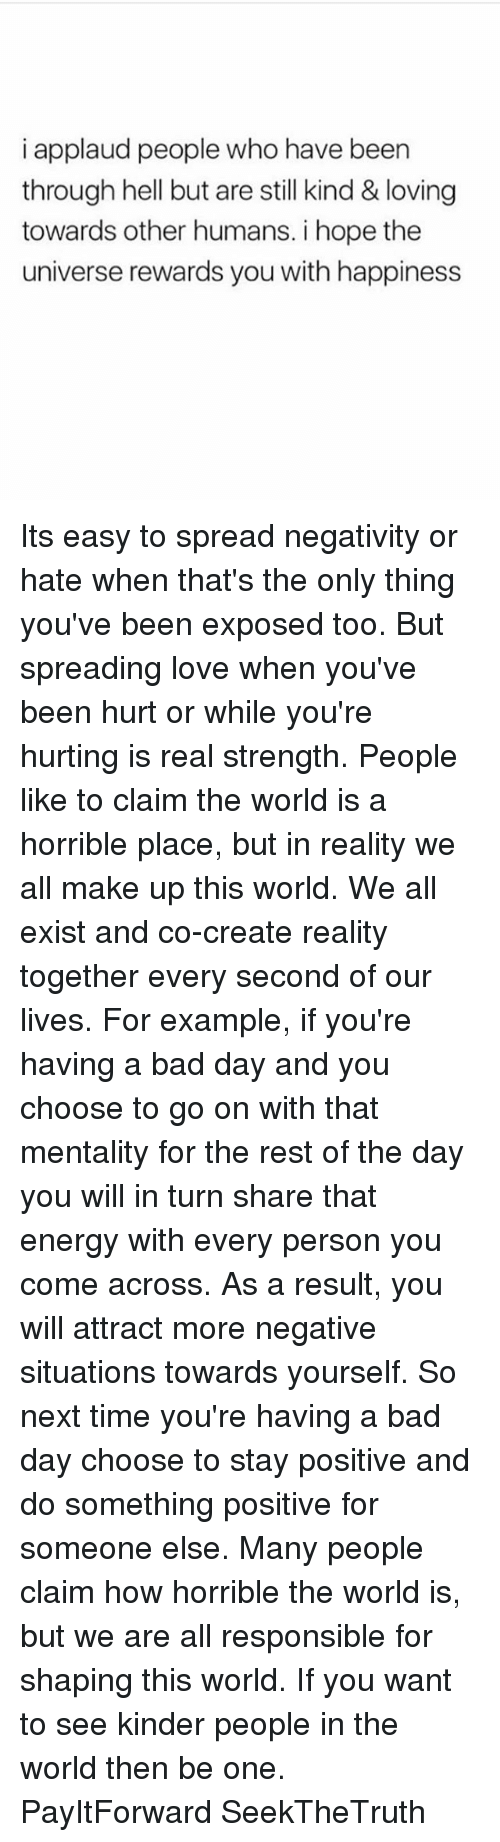 Bad, Bad Day, and Energy: i applaud people who have been  through hell but are still kind & loving  towards other humans. i hope the  universe rewards you with happiness Its easy to spread negativity or hate when that's the only thing you've been exposed too. But spreading love when you've been hurt or while you're hurting is real strength. People like to claim the world is a horrible place, but in reality we all make up this world. We all exist and co-create reality together every second of our lives. For example, if you're having a bad day and you choose to go on with that mentality for the rest of the day you will in turn share that energy with every person you come across. As a result, you will attract more negative situations towards yourself. So next time you're having a bad day choose to stay positive and do something positive for someone else. Many people claim how horrible the world is, but we are all responsible for shaping this world. If you want to see kinder people in the world then be one. PayItForward SeekTheTruth